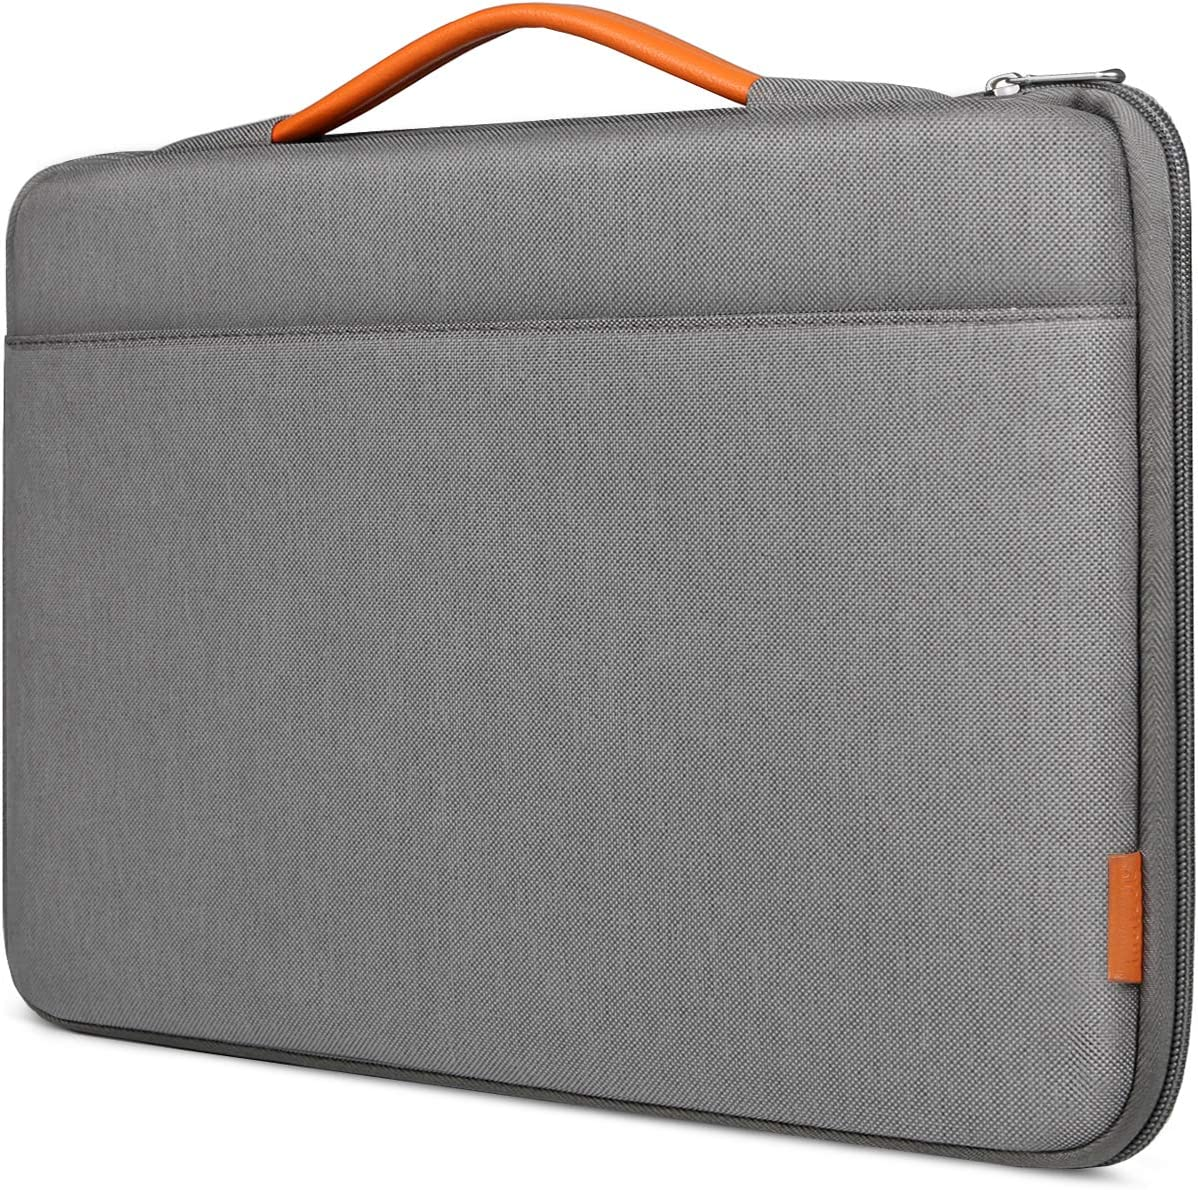 Inateck 15-15.6 Inch Shockproof Laptop Sleeve Carrying Case Chromebook Notebook Ultrabook Briefcase, Netbook Bag with Handle - Gray